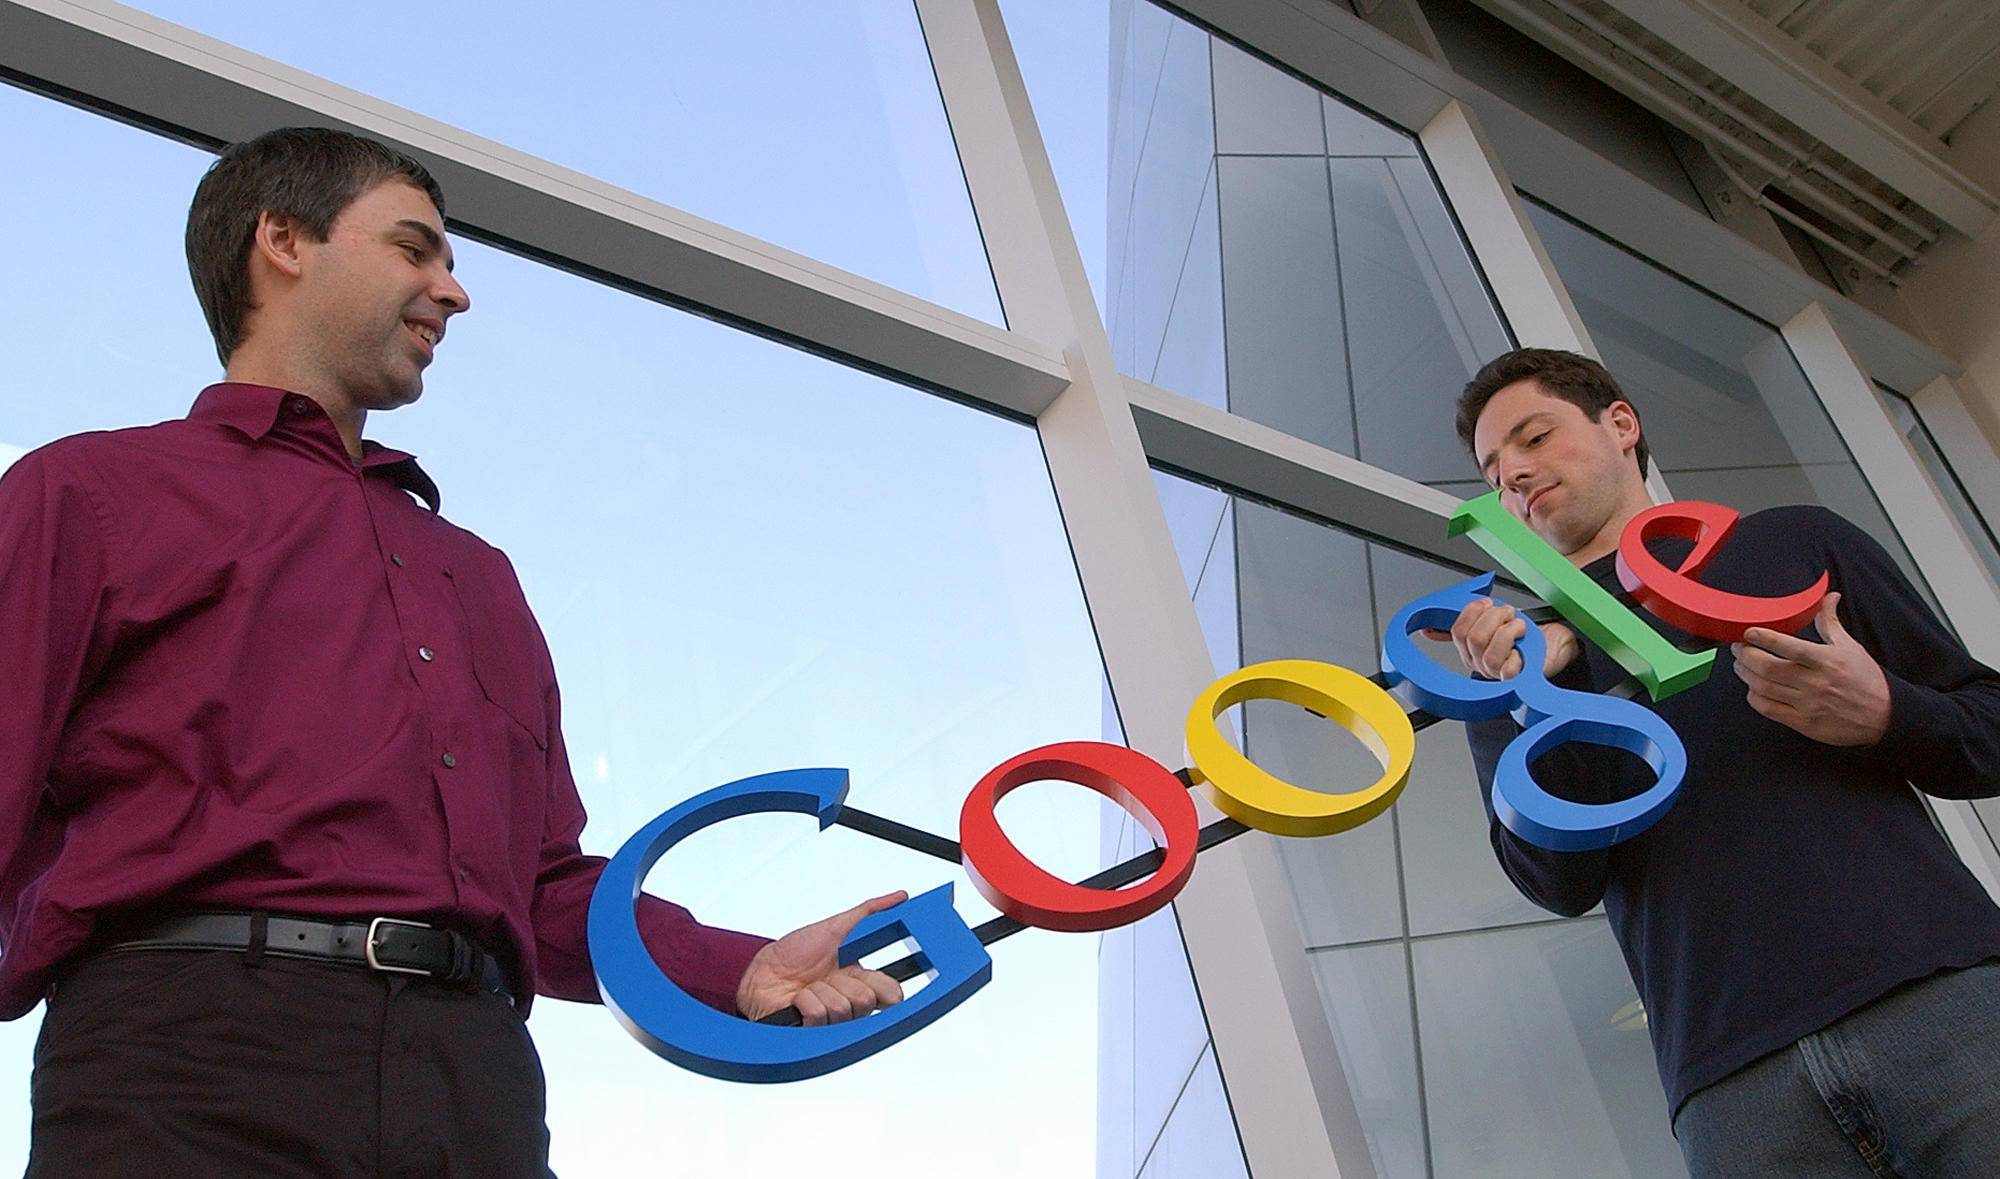 Google co-founders Larry Page, left, and Sergey Brin pose for photos at their company's headquarters in Mountain View, Calif. Google's IPO 10 years ago launched the company on a trajectory that continues to reshape its business and much of the world in its orbit.